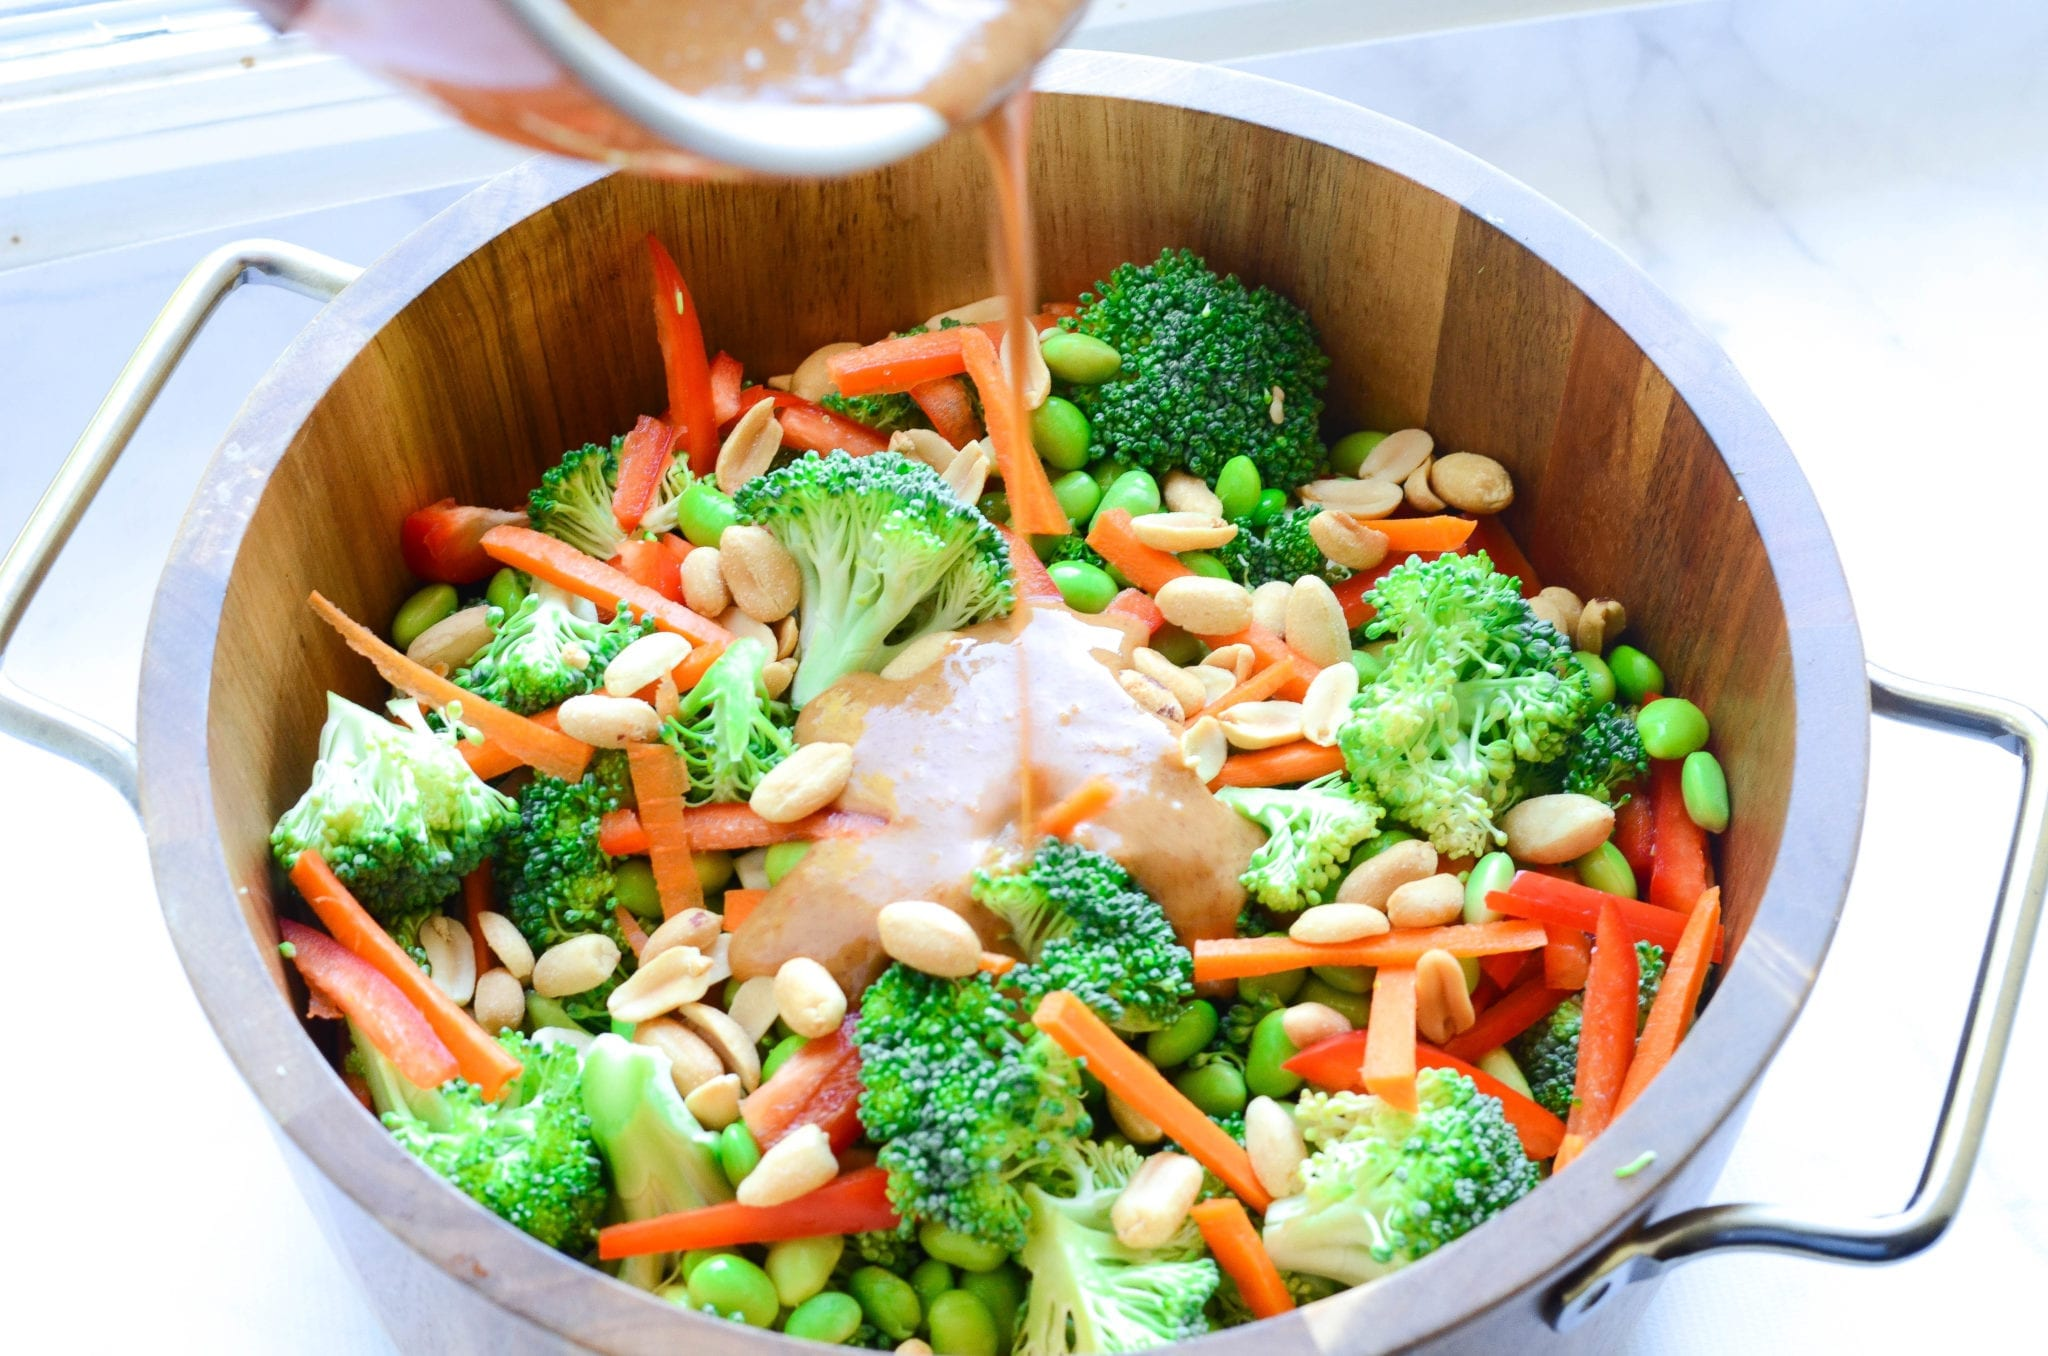 Thai Broccoli Salad With Spicy Peanut Dressing